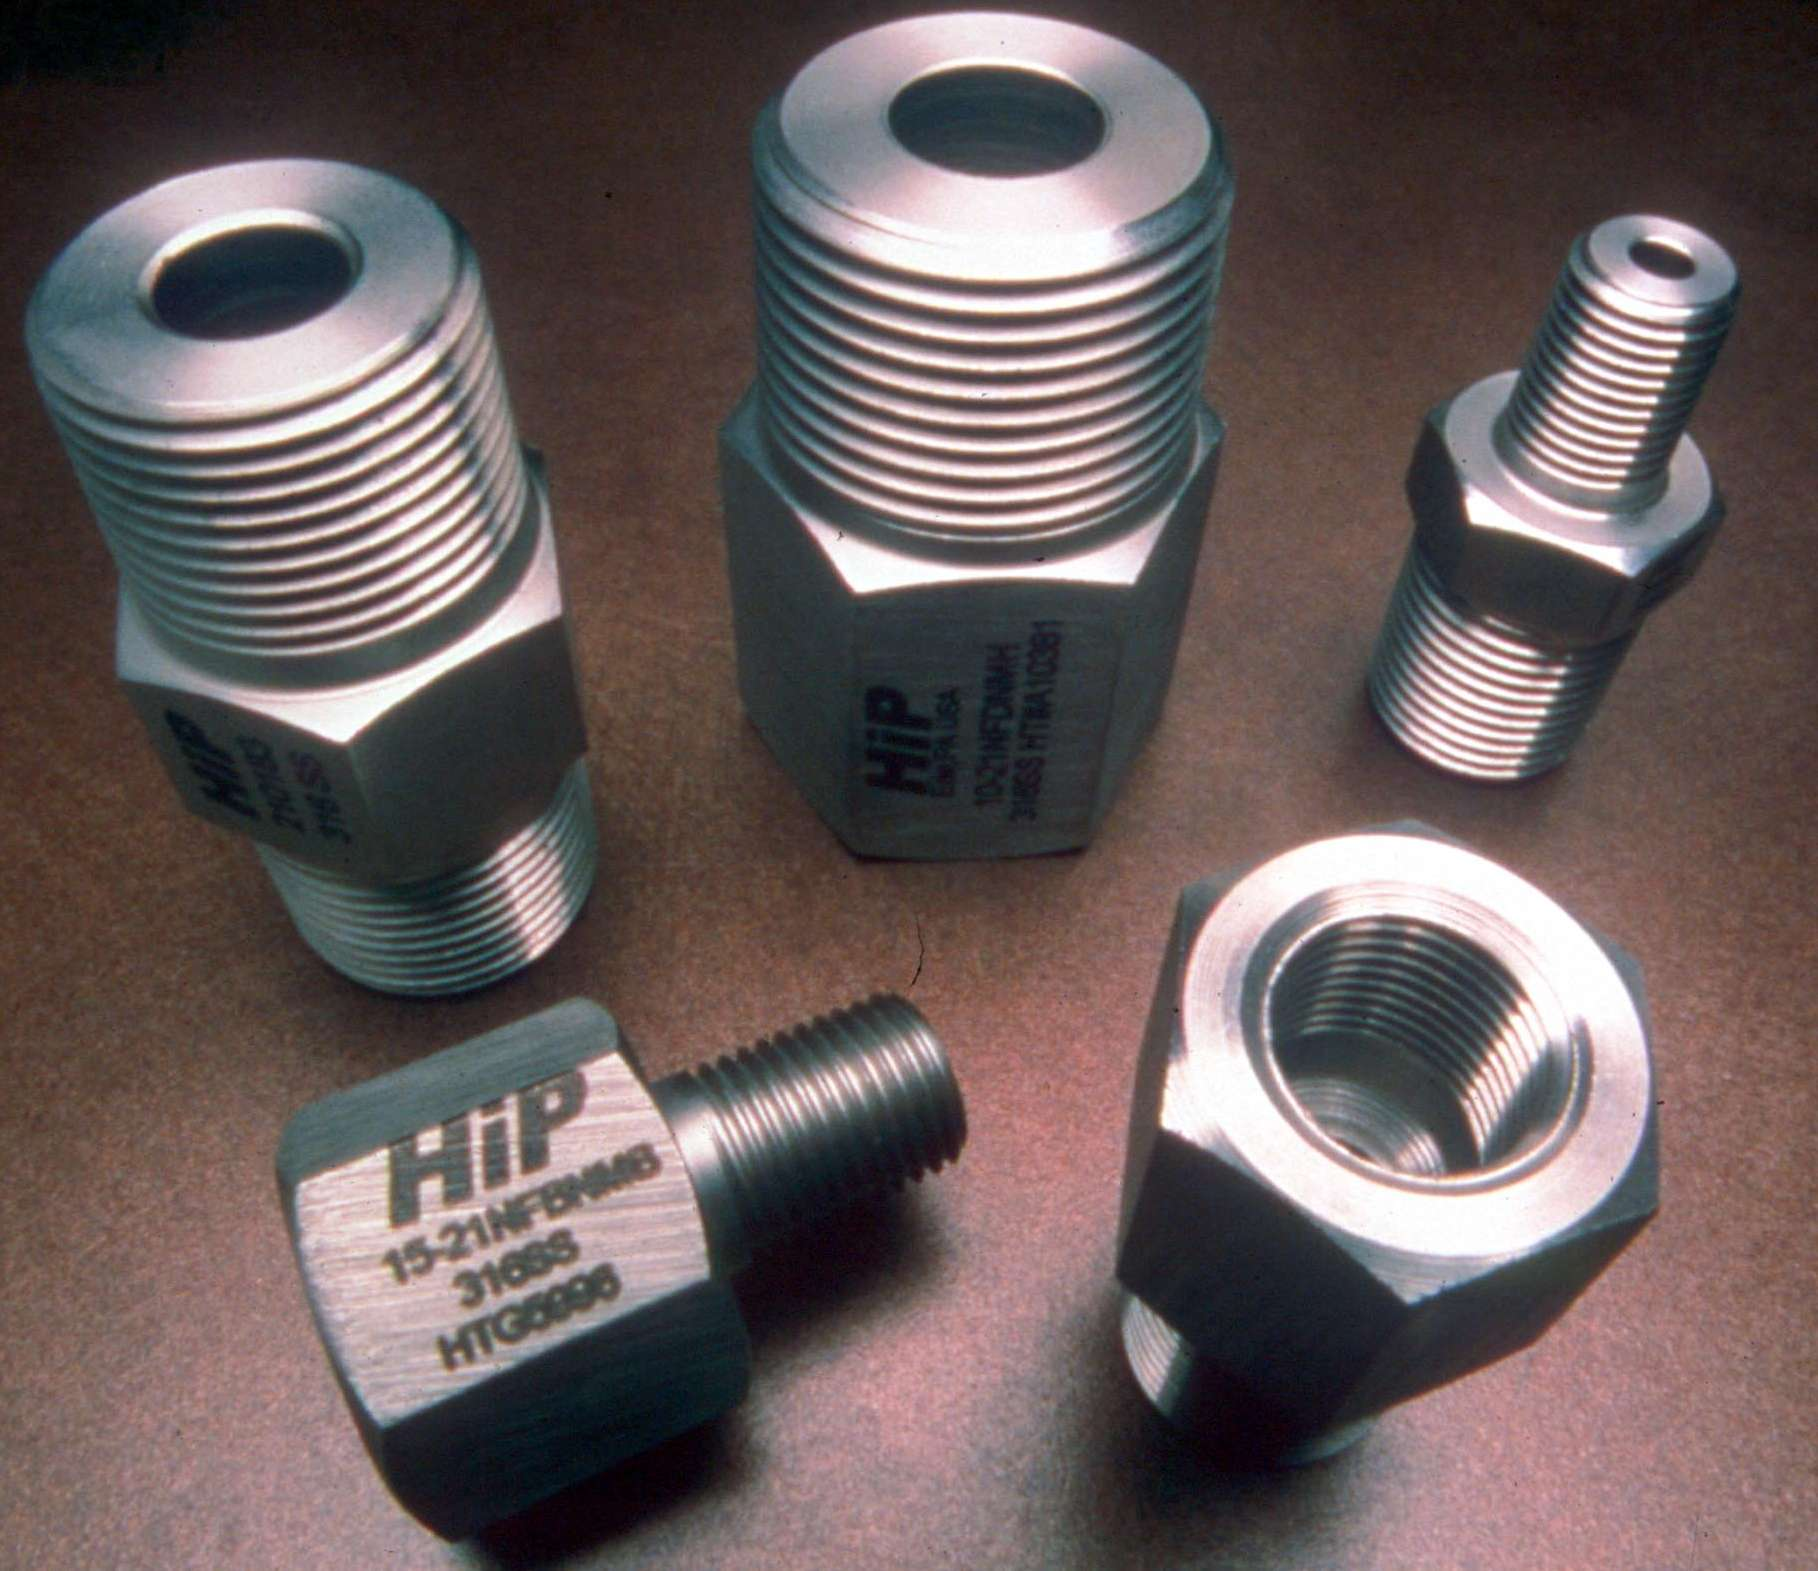 New high pressure npt fittings available from hip